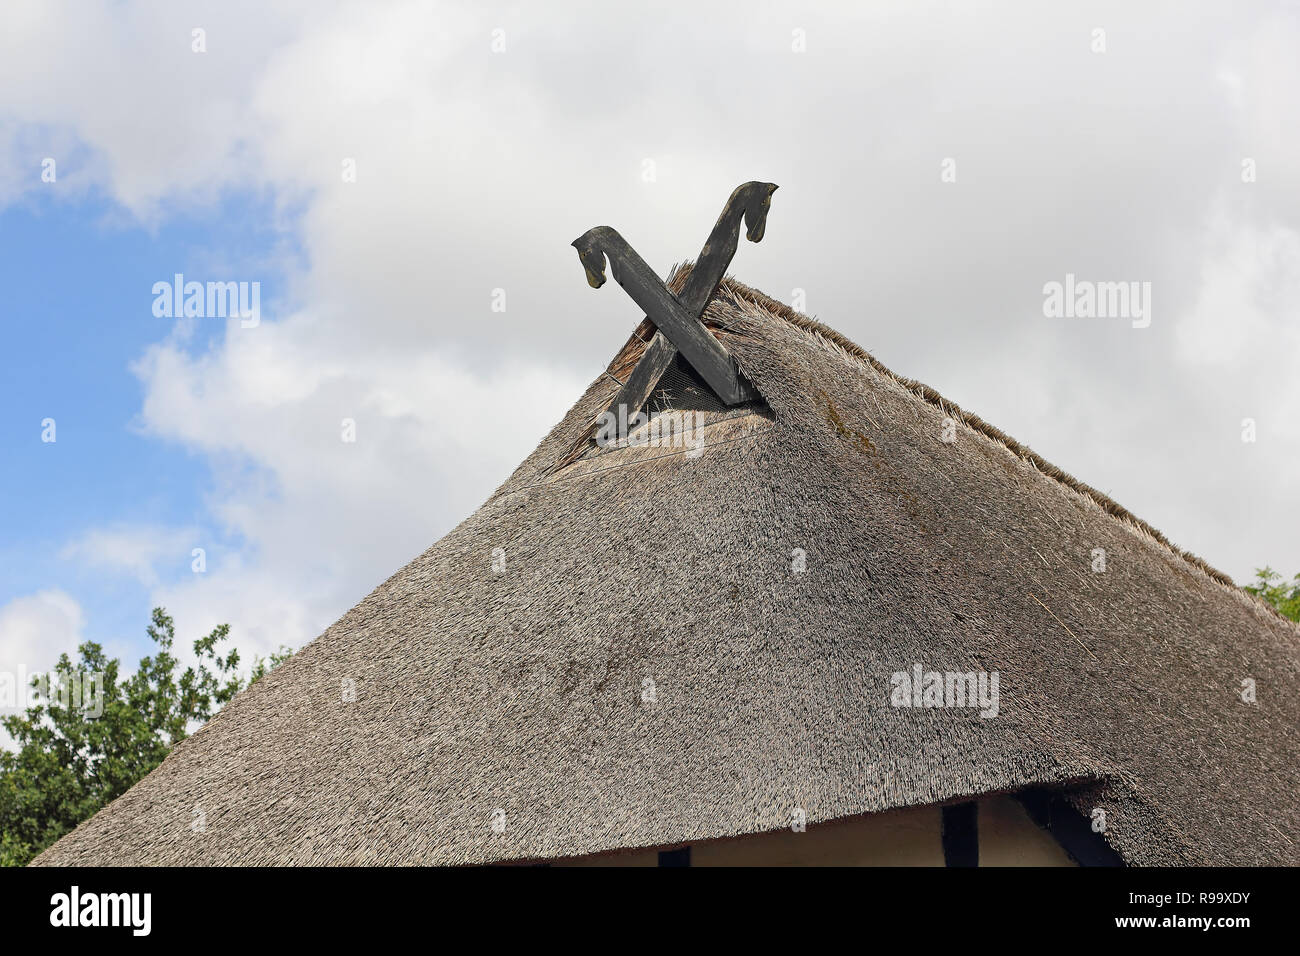 Gable with horse-heads in North Germany - Stock Image